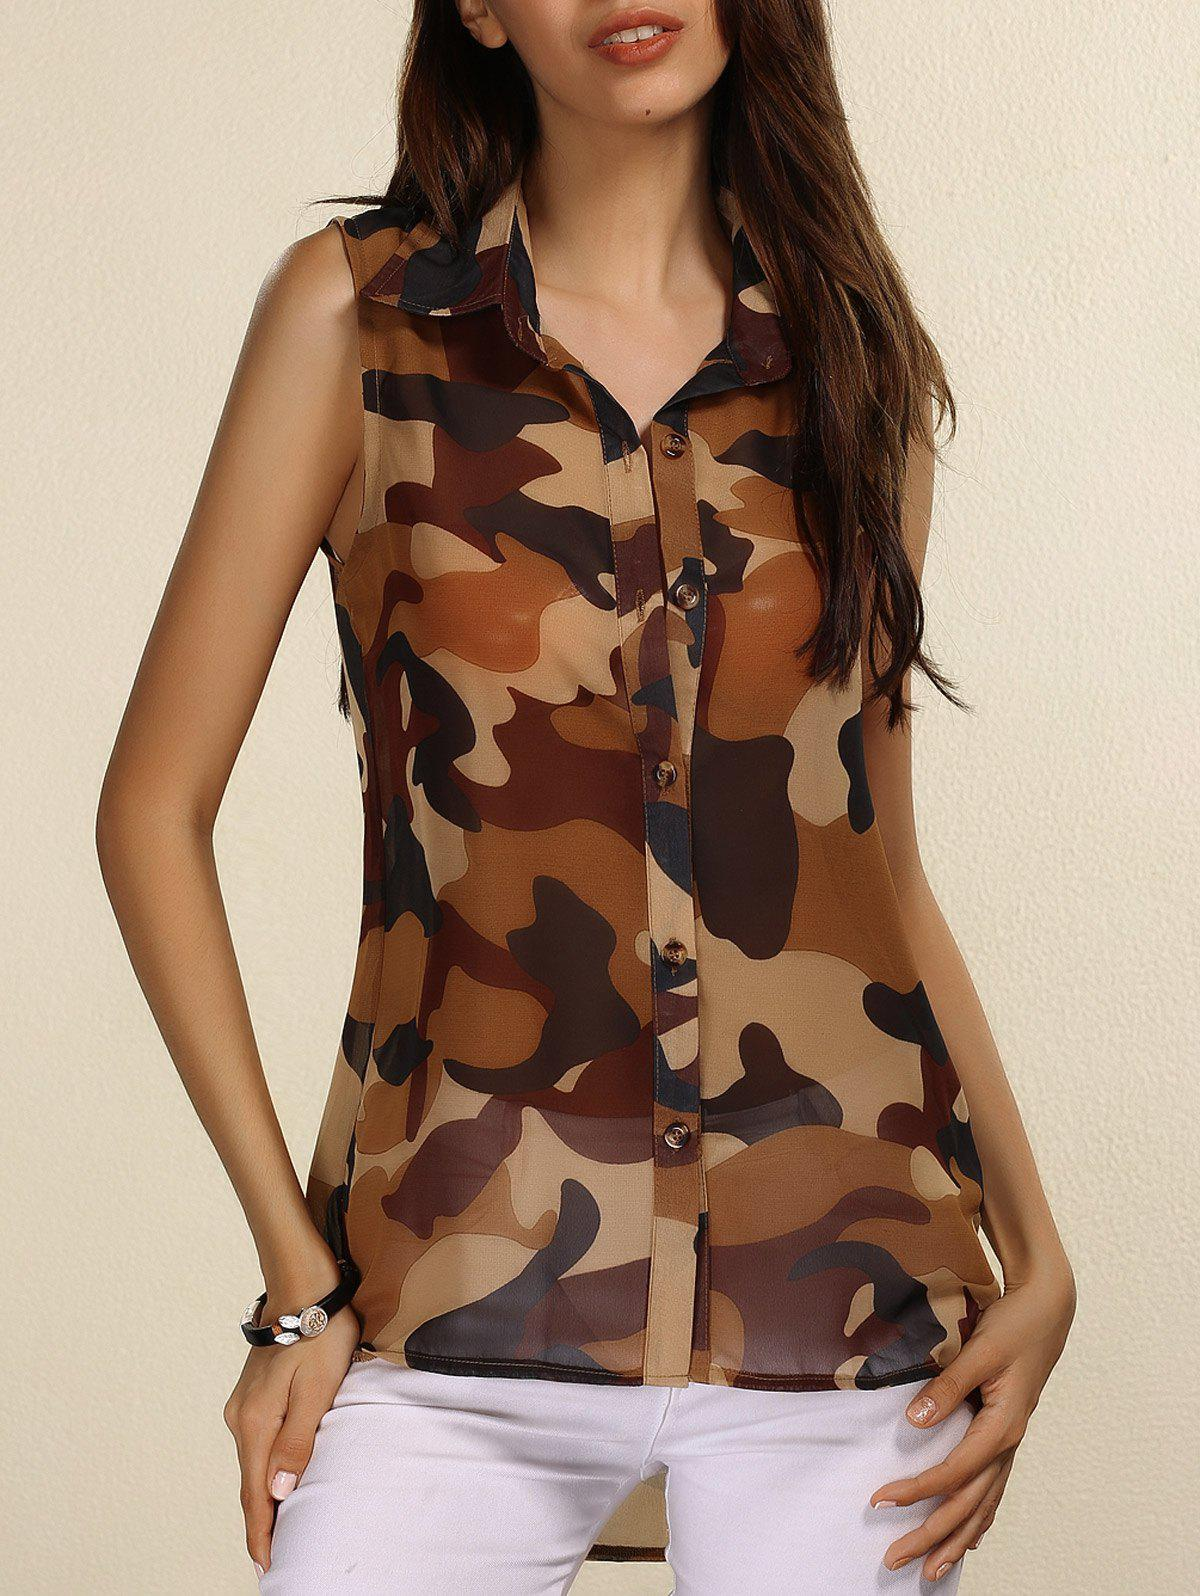 Shirt Collar Sleeveless Camouflage Print See-Through Women's Blouse - CAMOUFLAGE XL